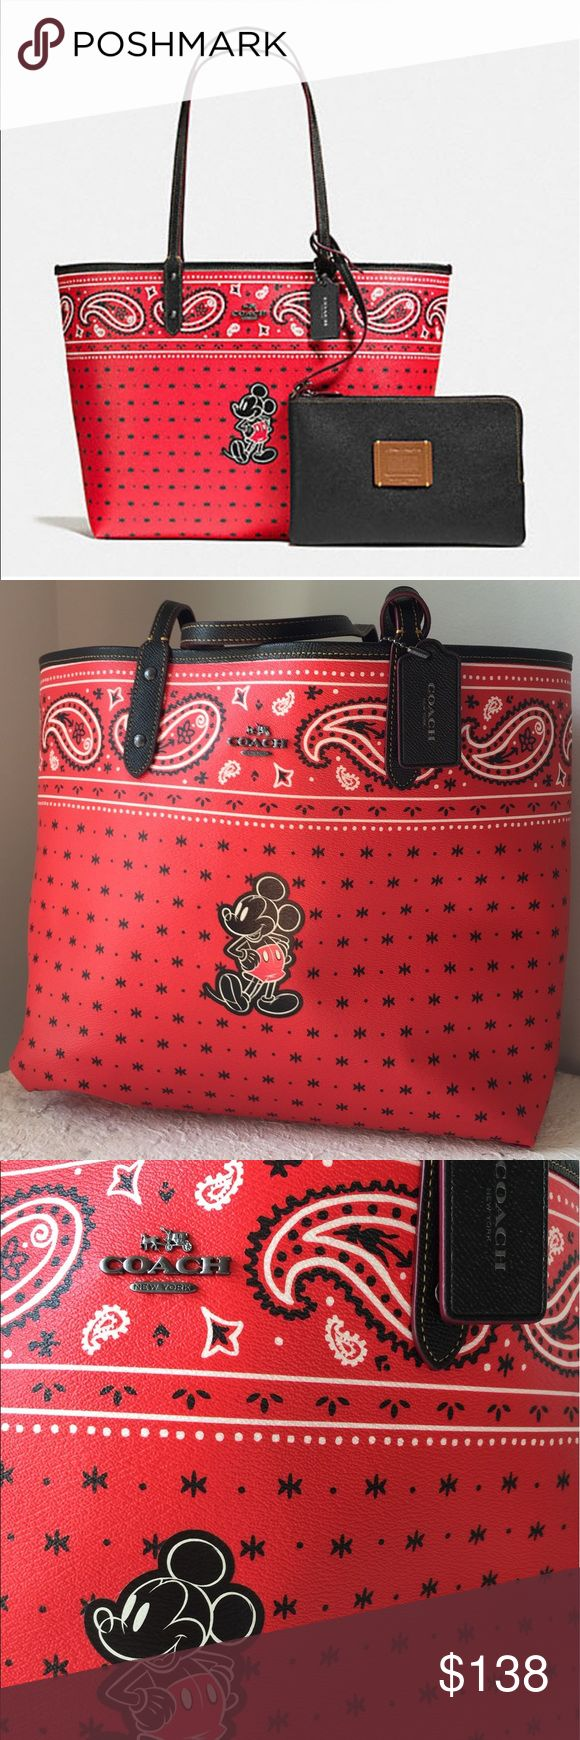 🔥 Disney COACH tote bag authentic reversible Beautiful COACH Disney tote bag EUC. Reversible red outside and black inside. Fits a ton of things very roomy. Coach Bags Totes